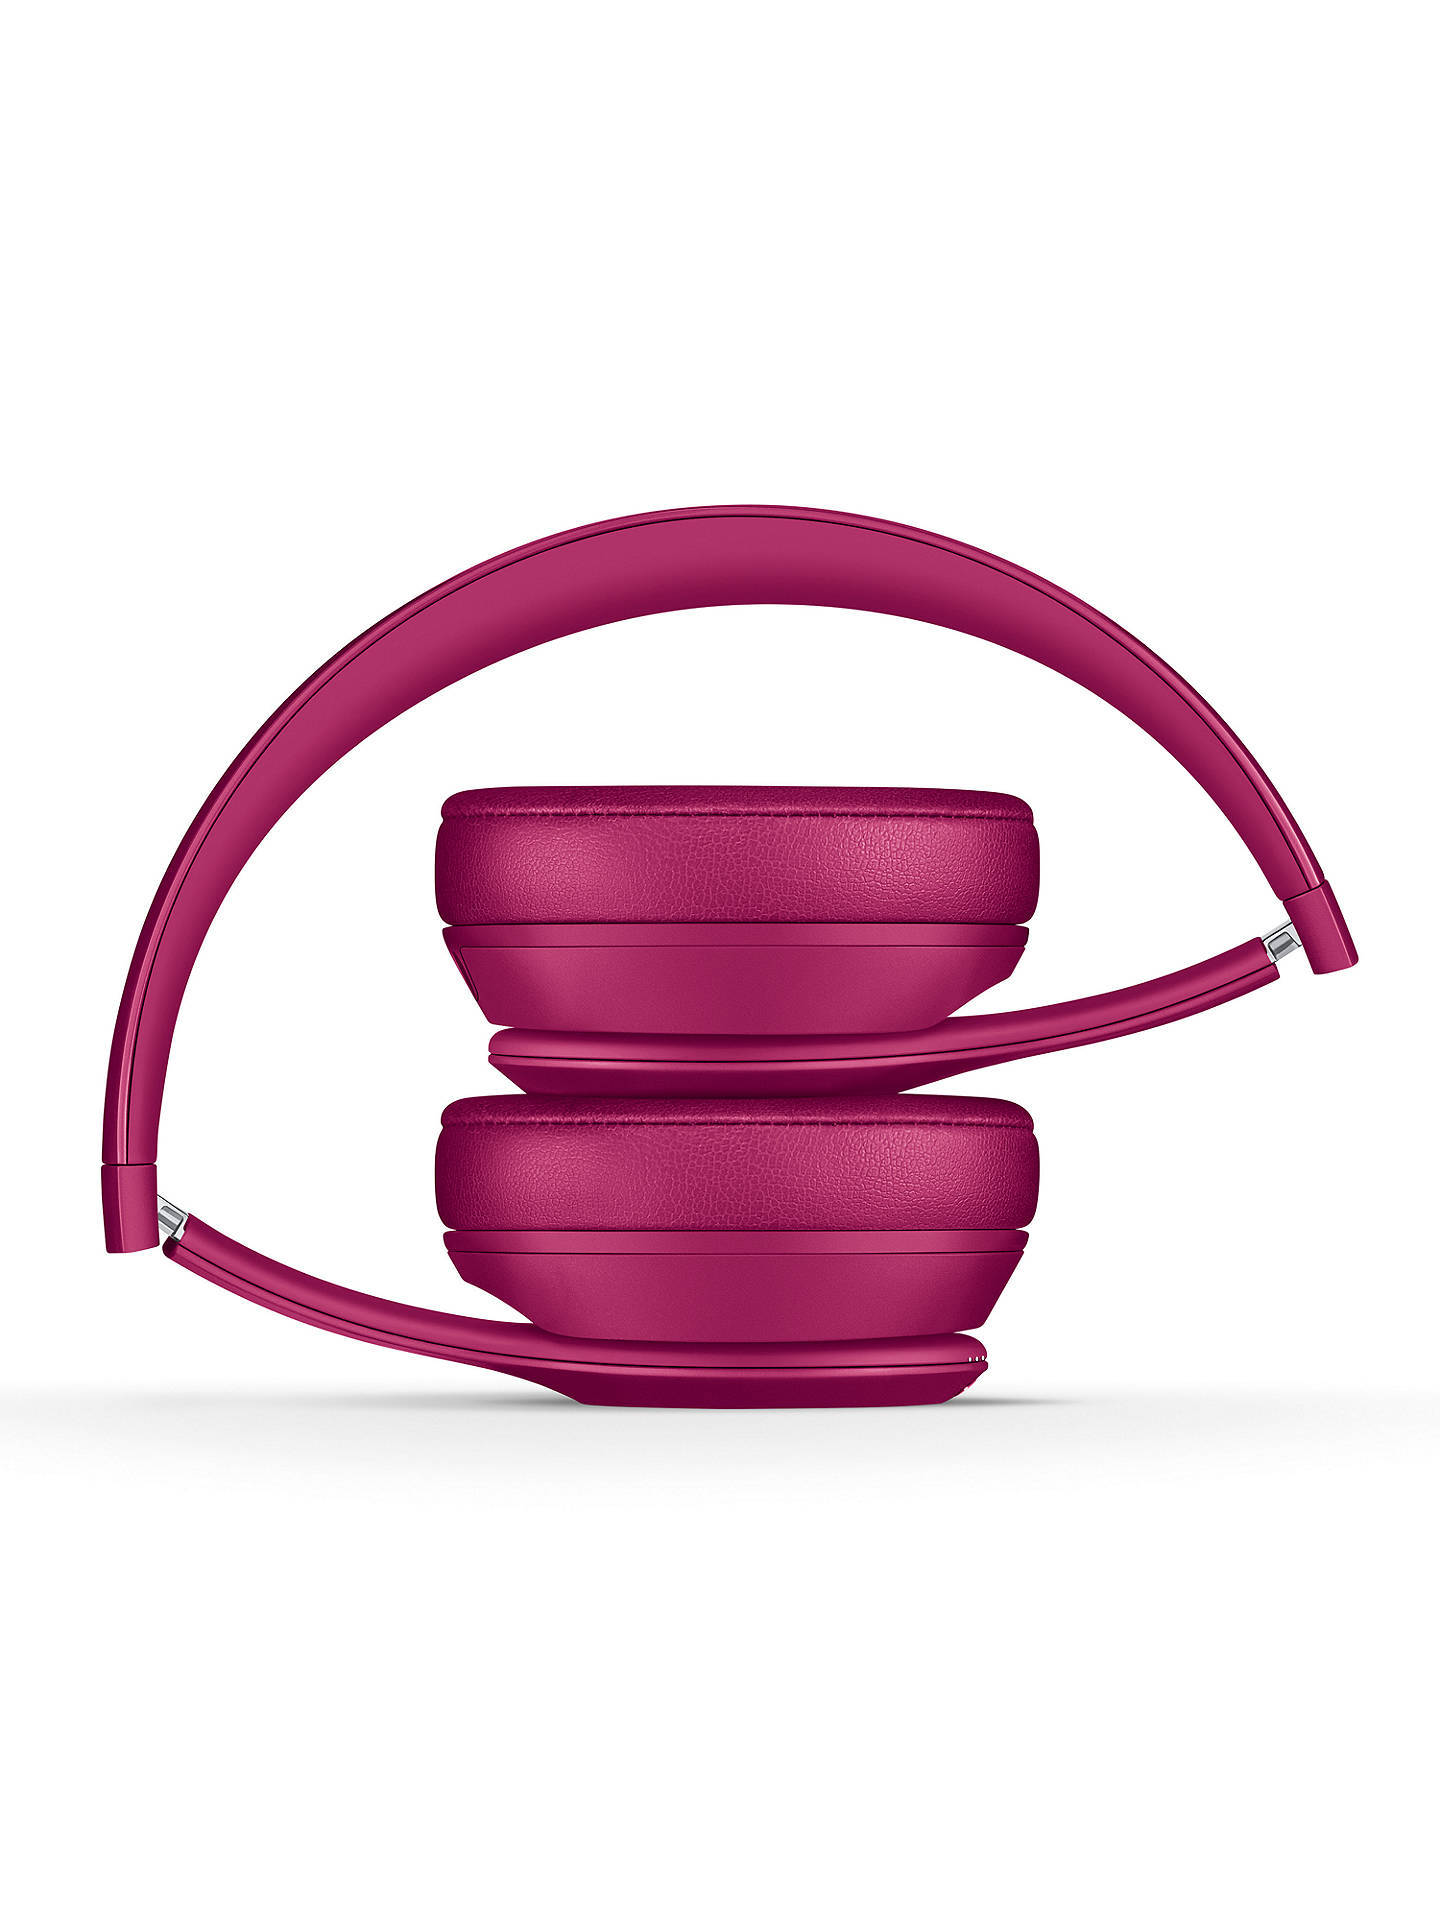 Buy Beats Solo³ Wireless Bluetooth On-Ear Headphones with Mic/Remote, Neighbourhood Collection, Brick Red Online at johnlewis.com